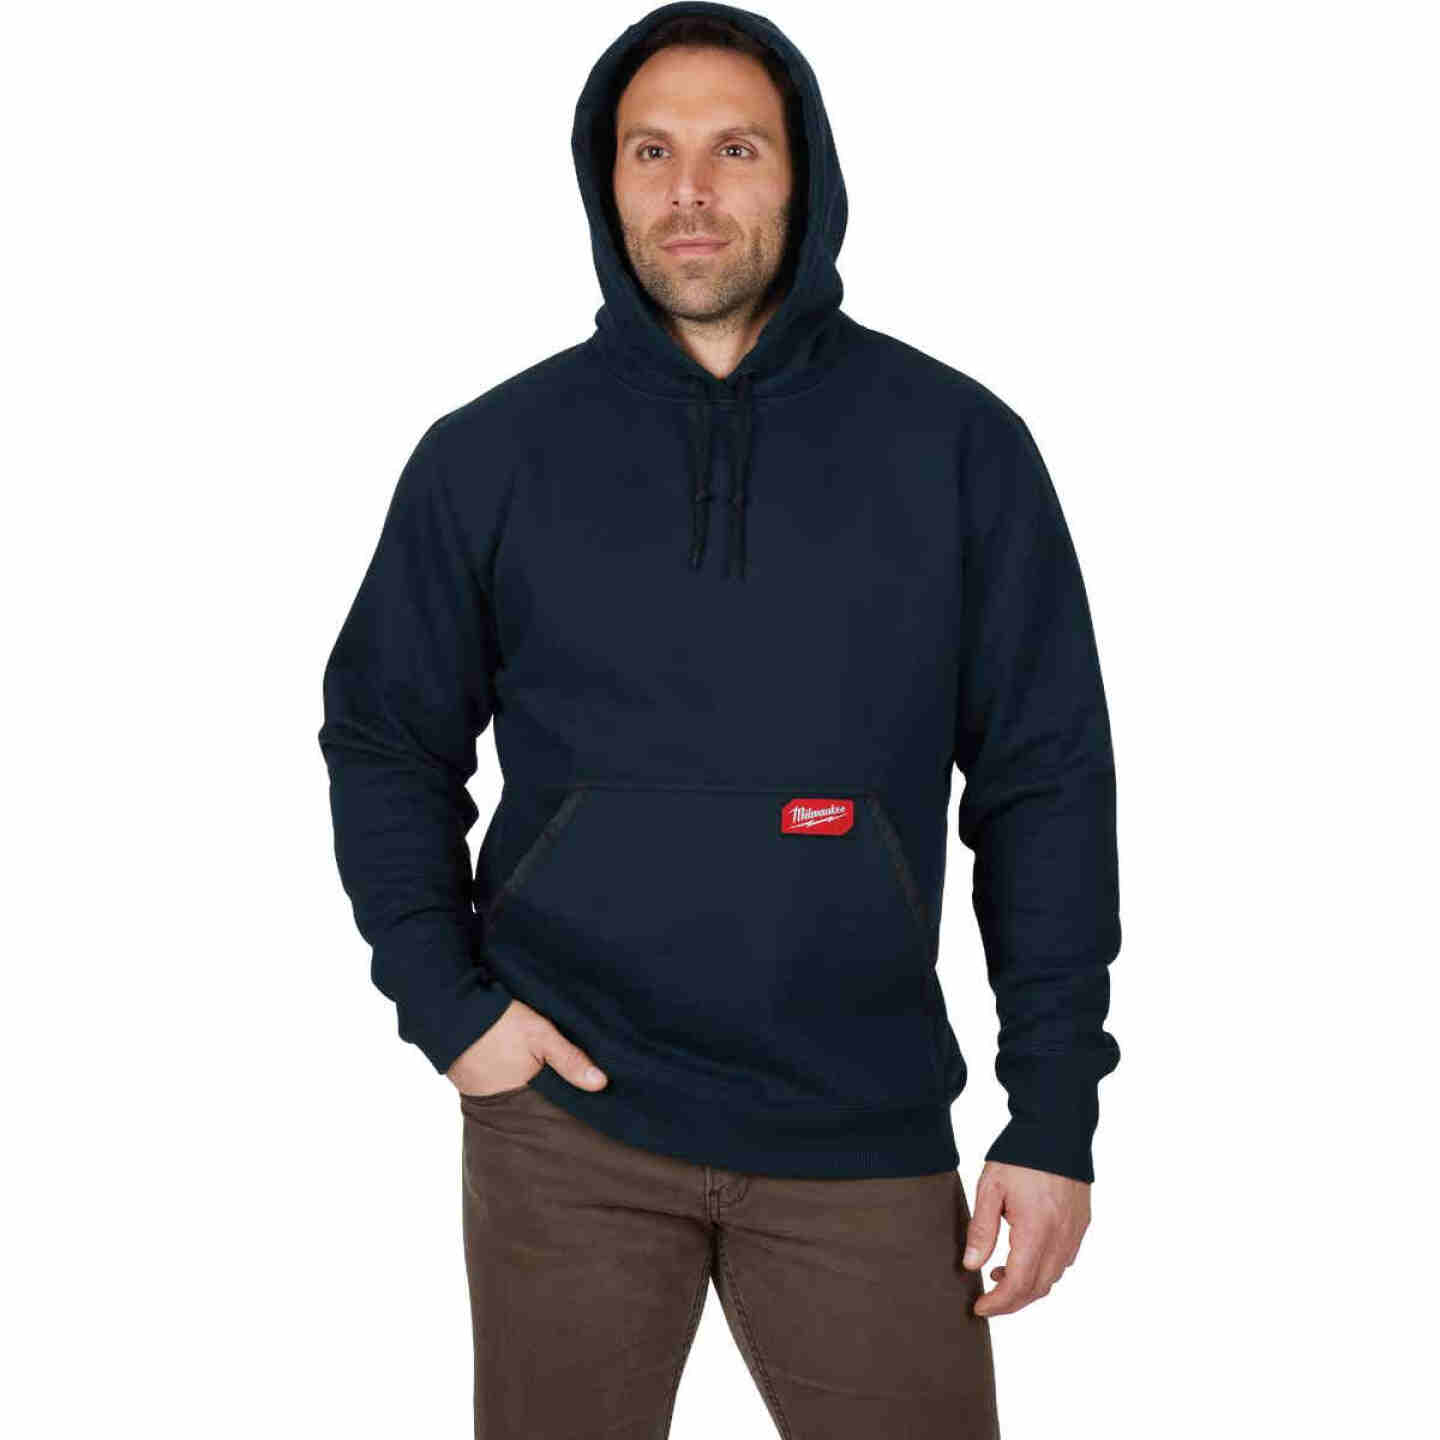 Milwaukee XL Navy Blue Heavy-Duty Pullover Hooded Sweatshirt Image 4